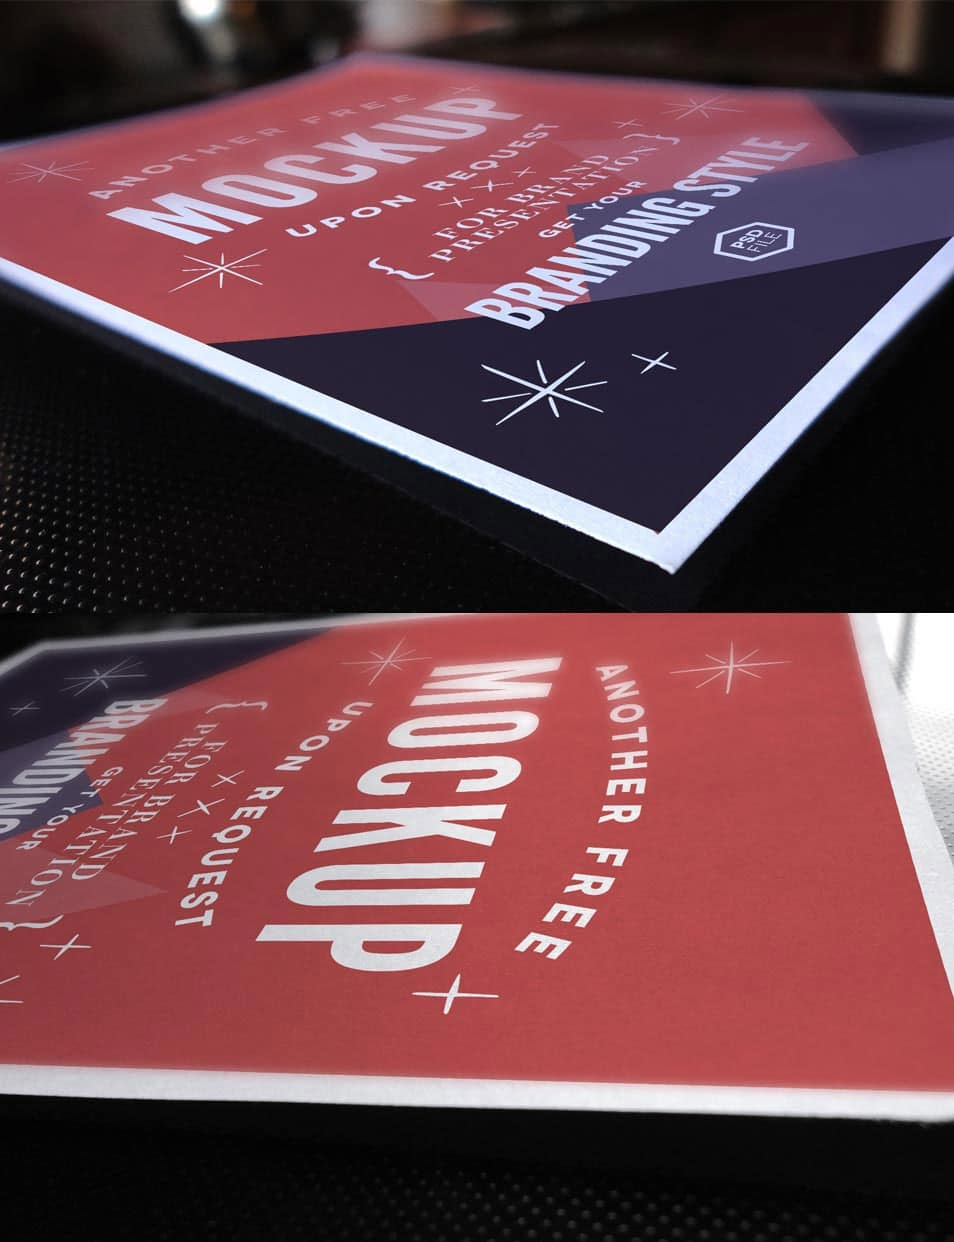 Psd A4 Paper Mock-Up Vol2